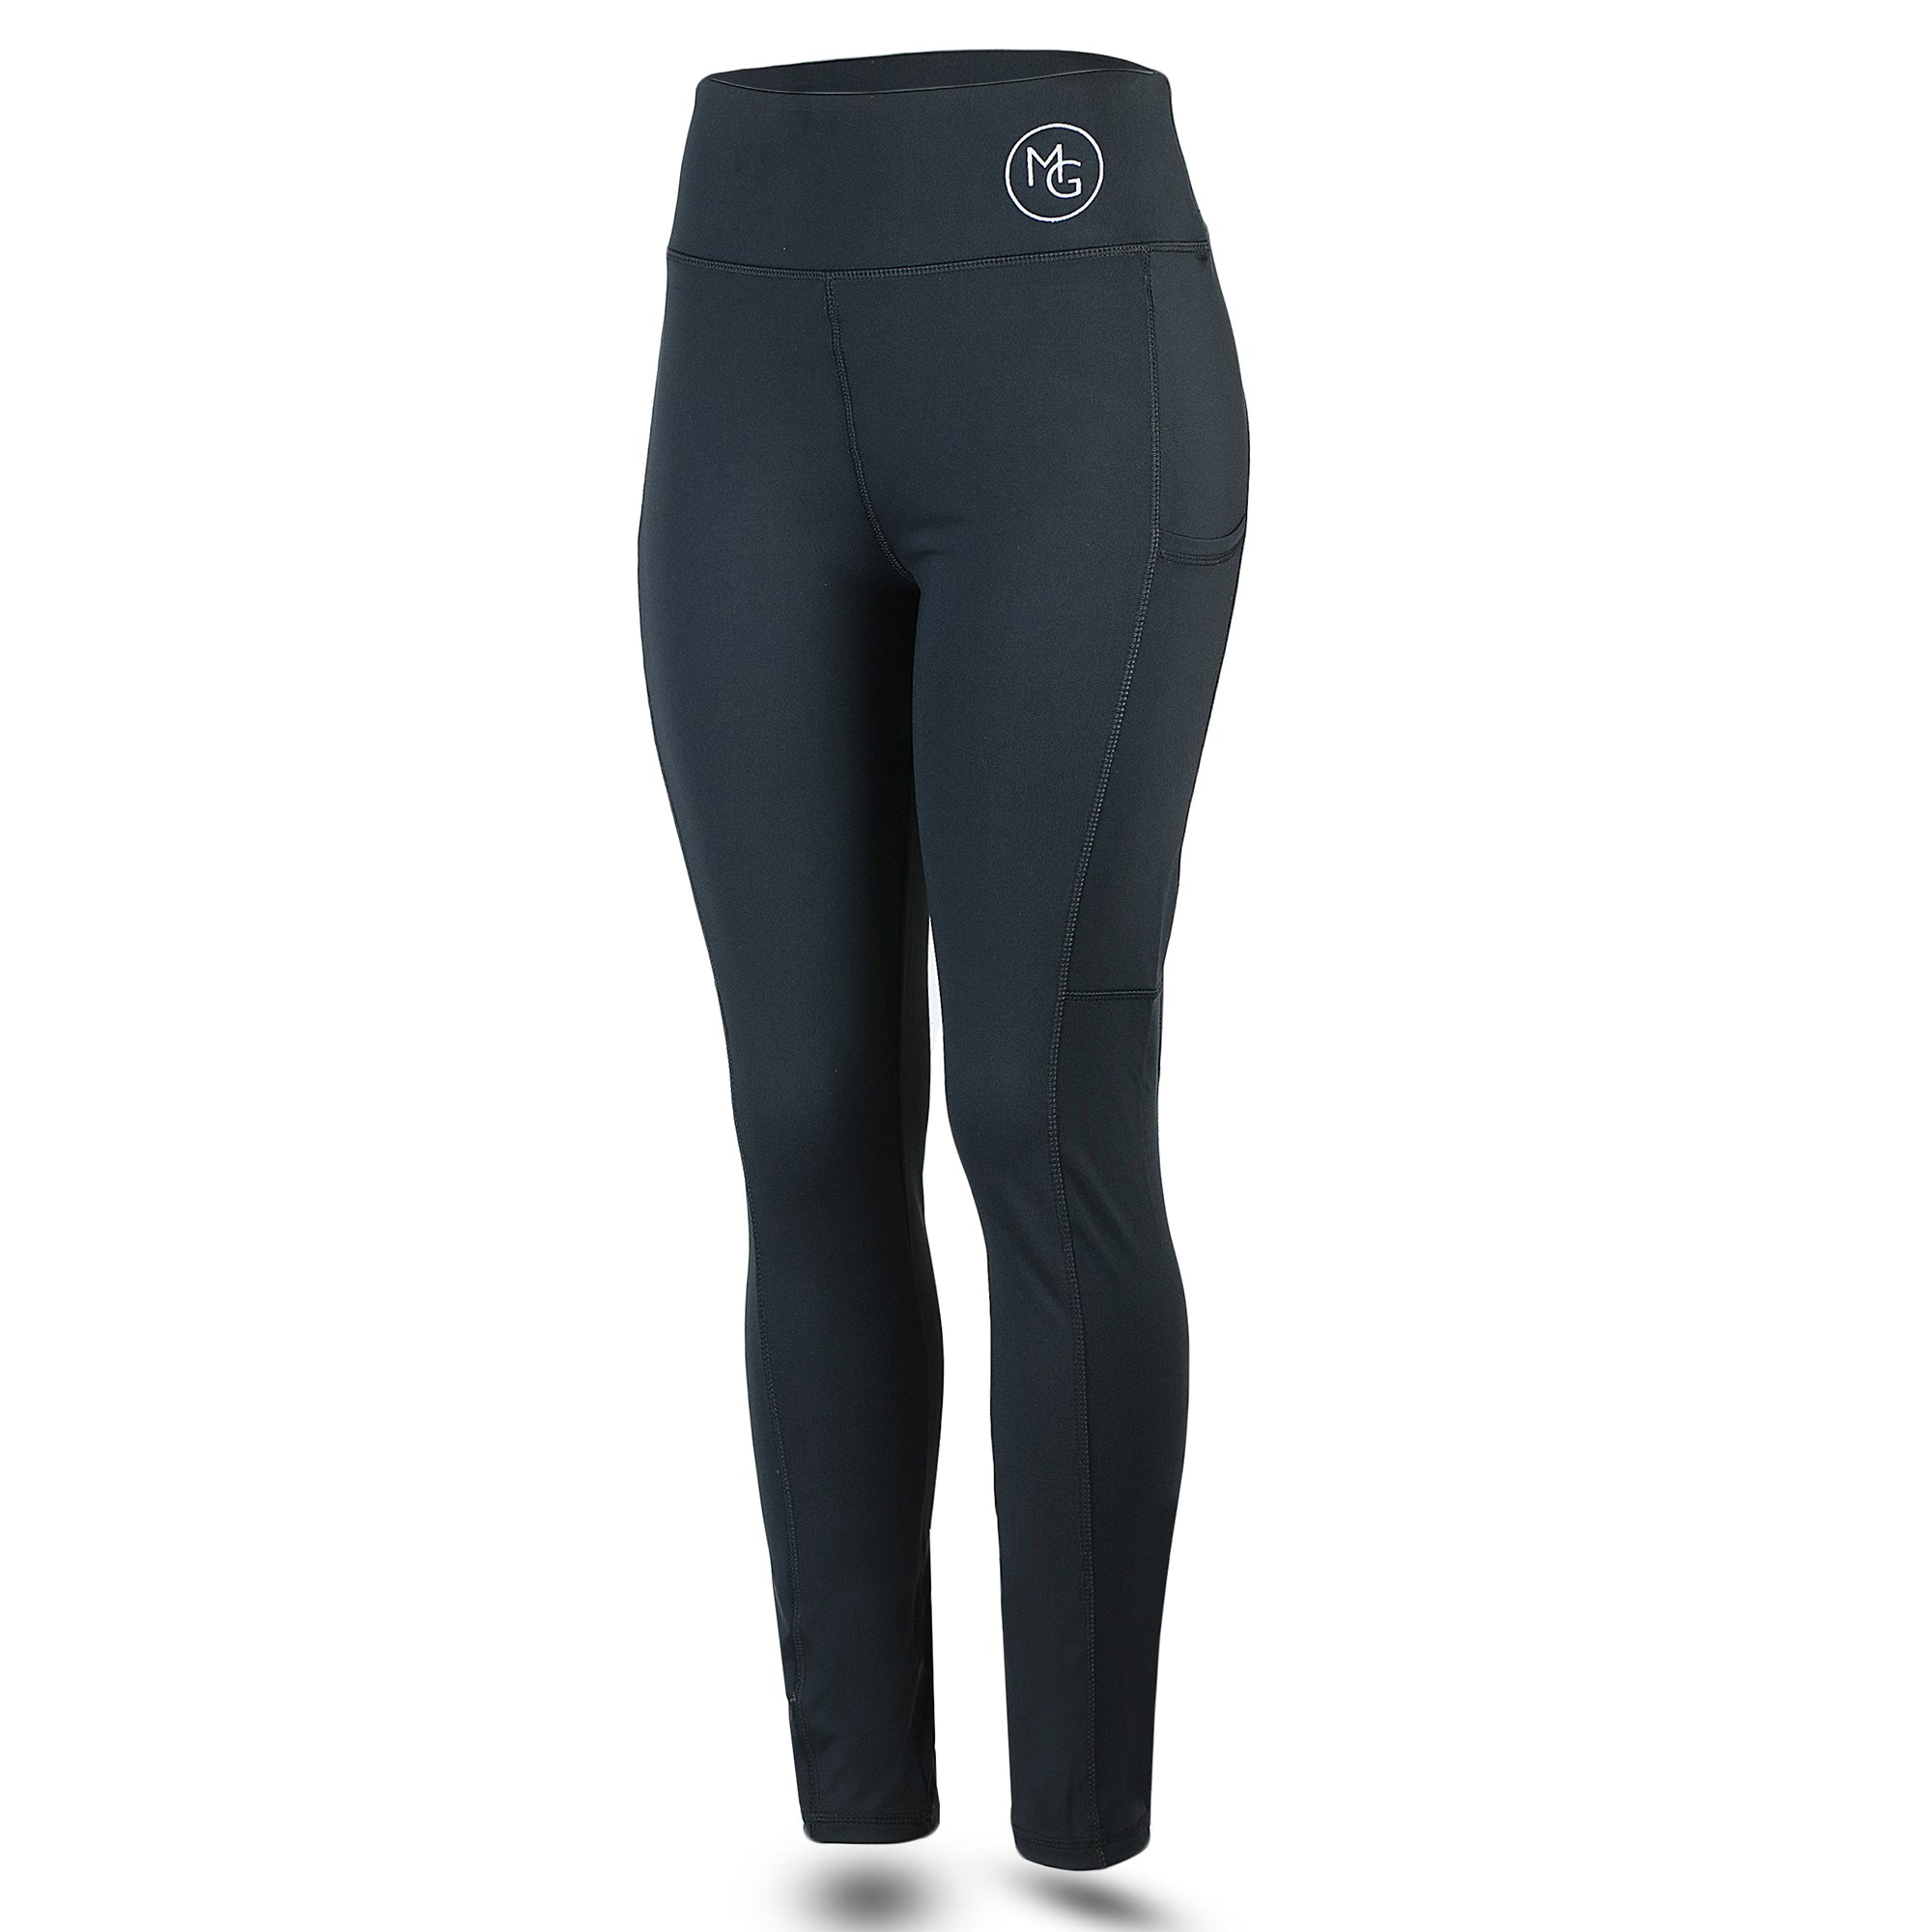 ***New** Plus-Size Leggings with side cellphone Pocket